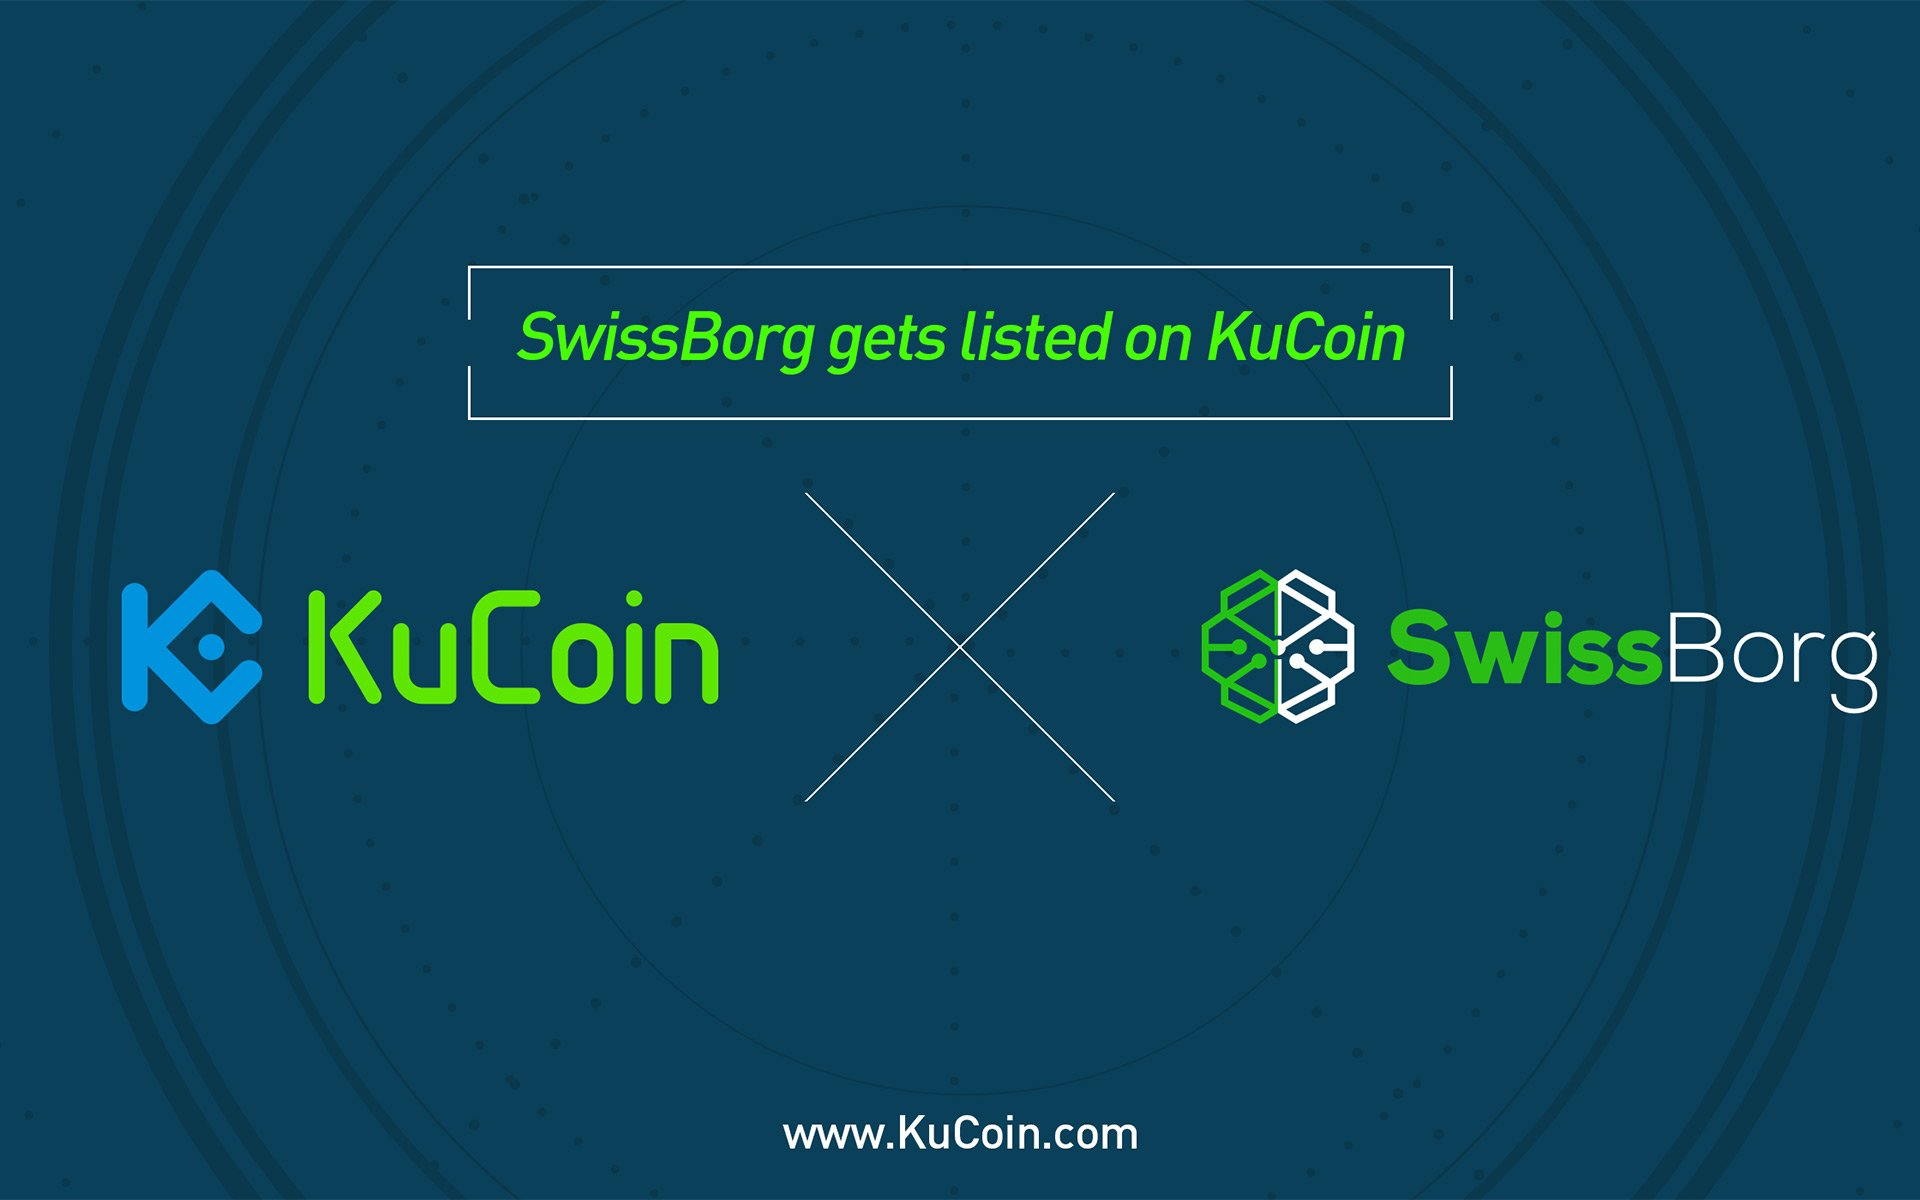 SwissBorg(CHSB) Gets Listed on KuCoin!